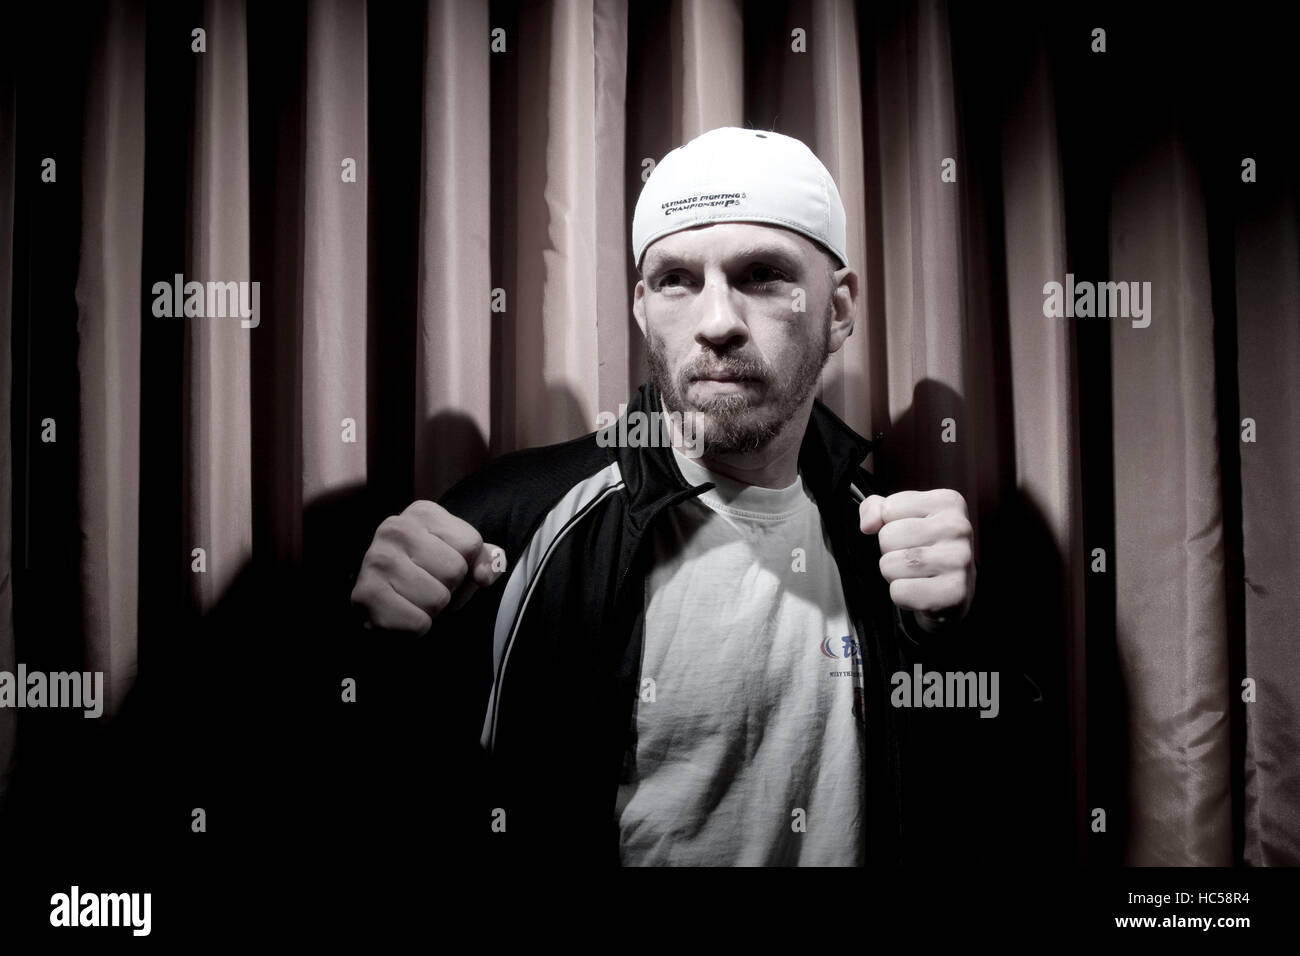 UFC fighter Spencer Fisher in Los Angeles, California on October 21, 2009. Francis Specker - Stock Image